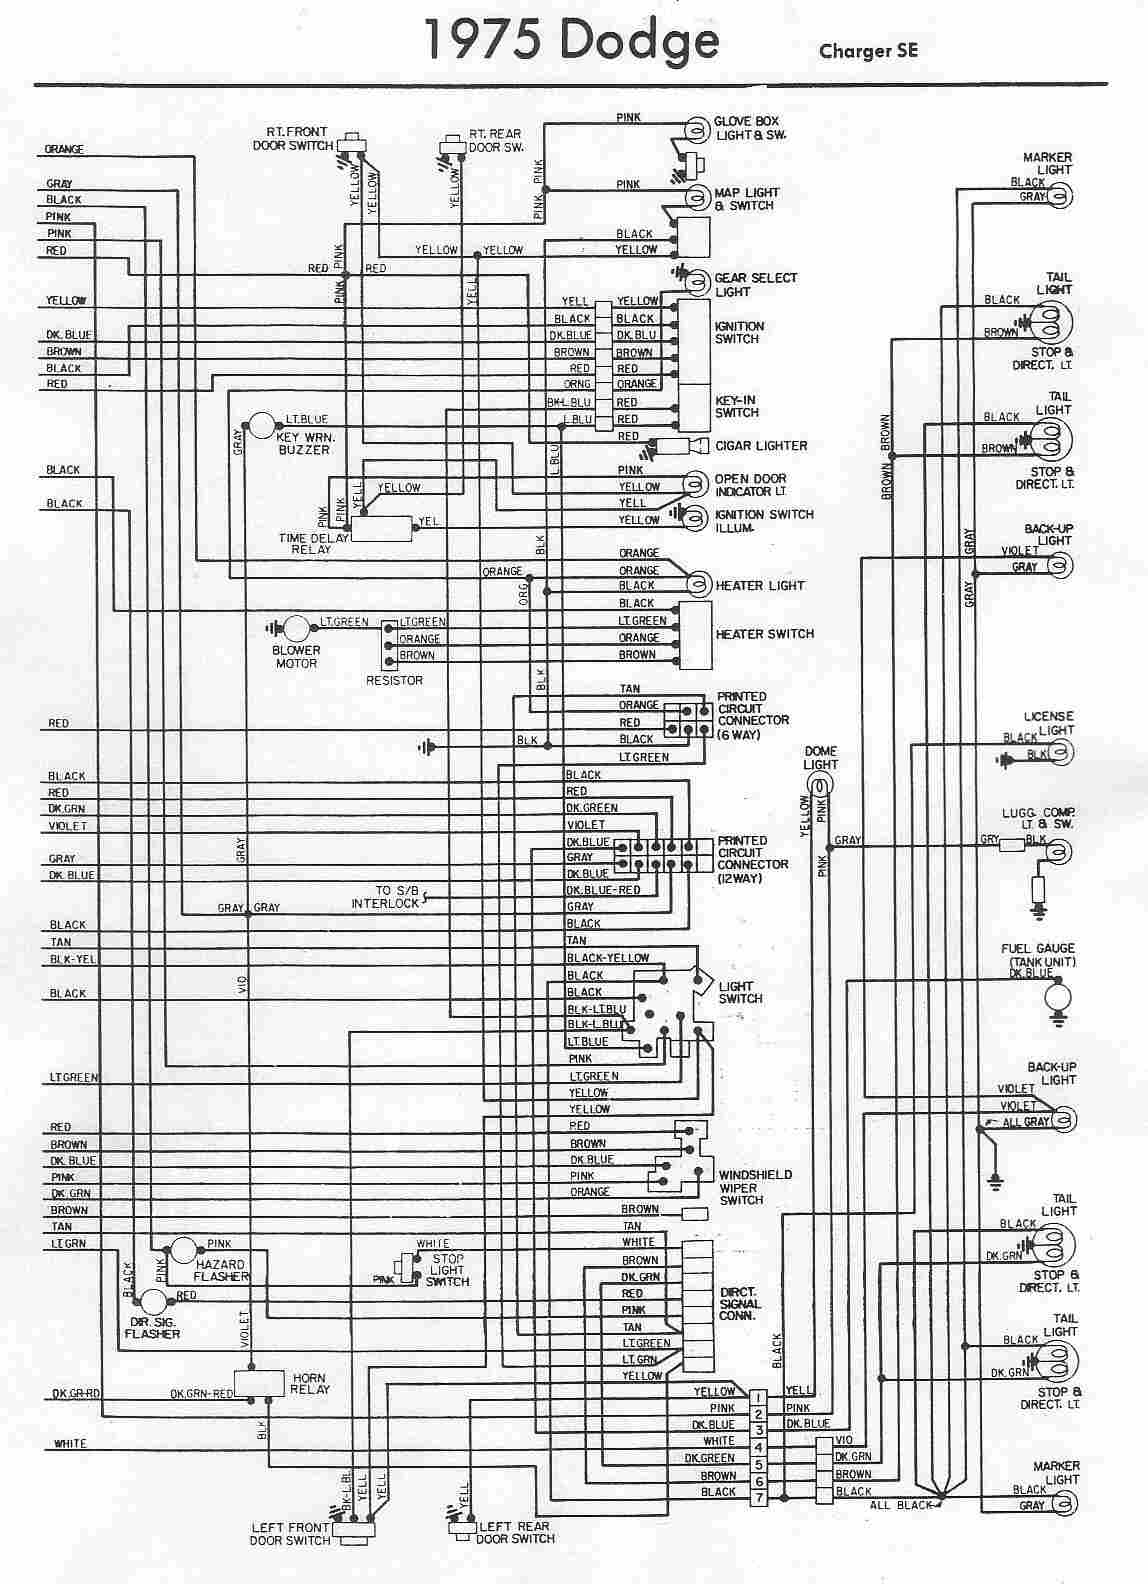 wiring diagrams 1972 dodge truck a collection of free picture wiring wiring diagram view [ 1148 x 1584 Pixel ]